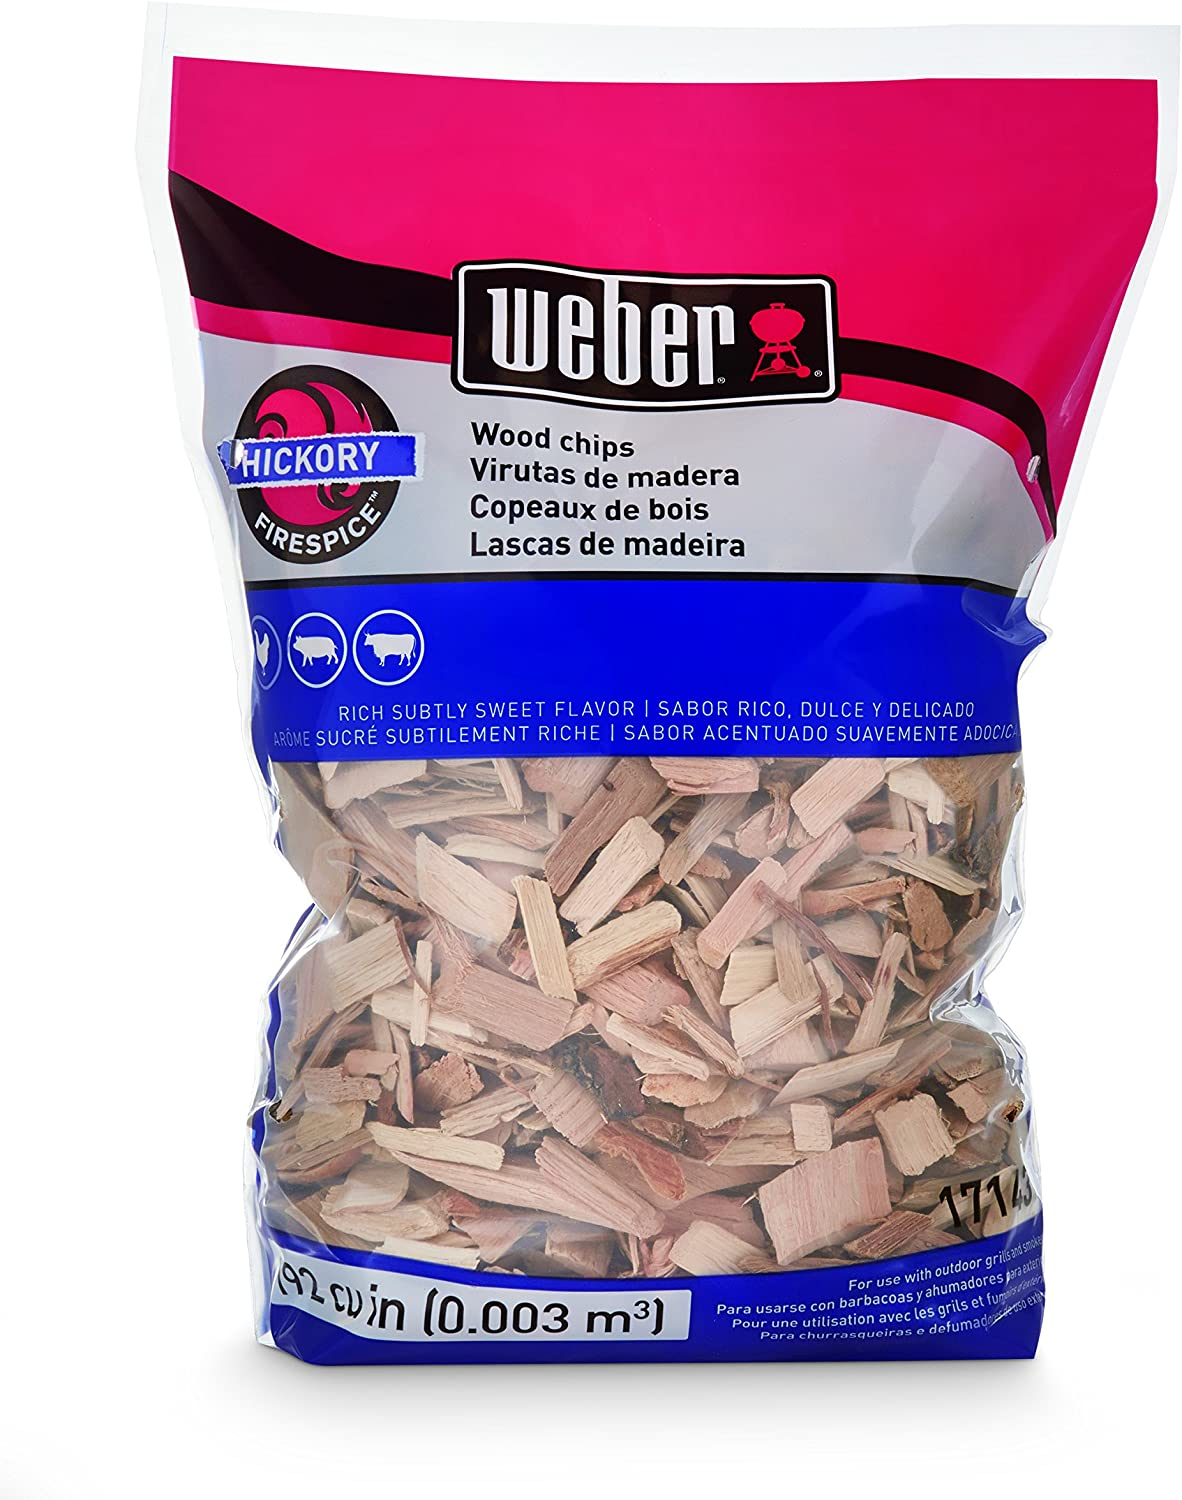 Weber Stephen Products 17143 Hickory Wood Chips, 192 0.003 cu, 2 lb